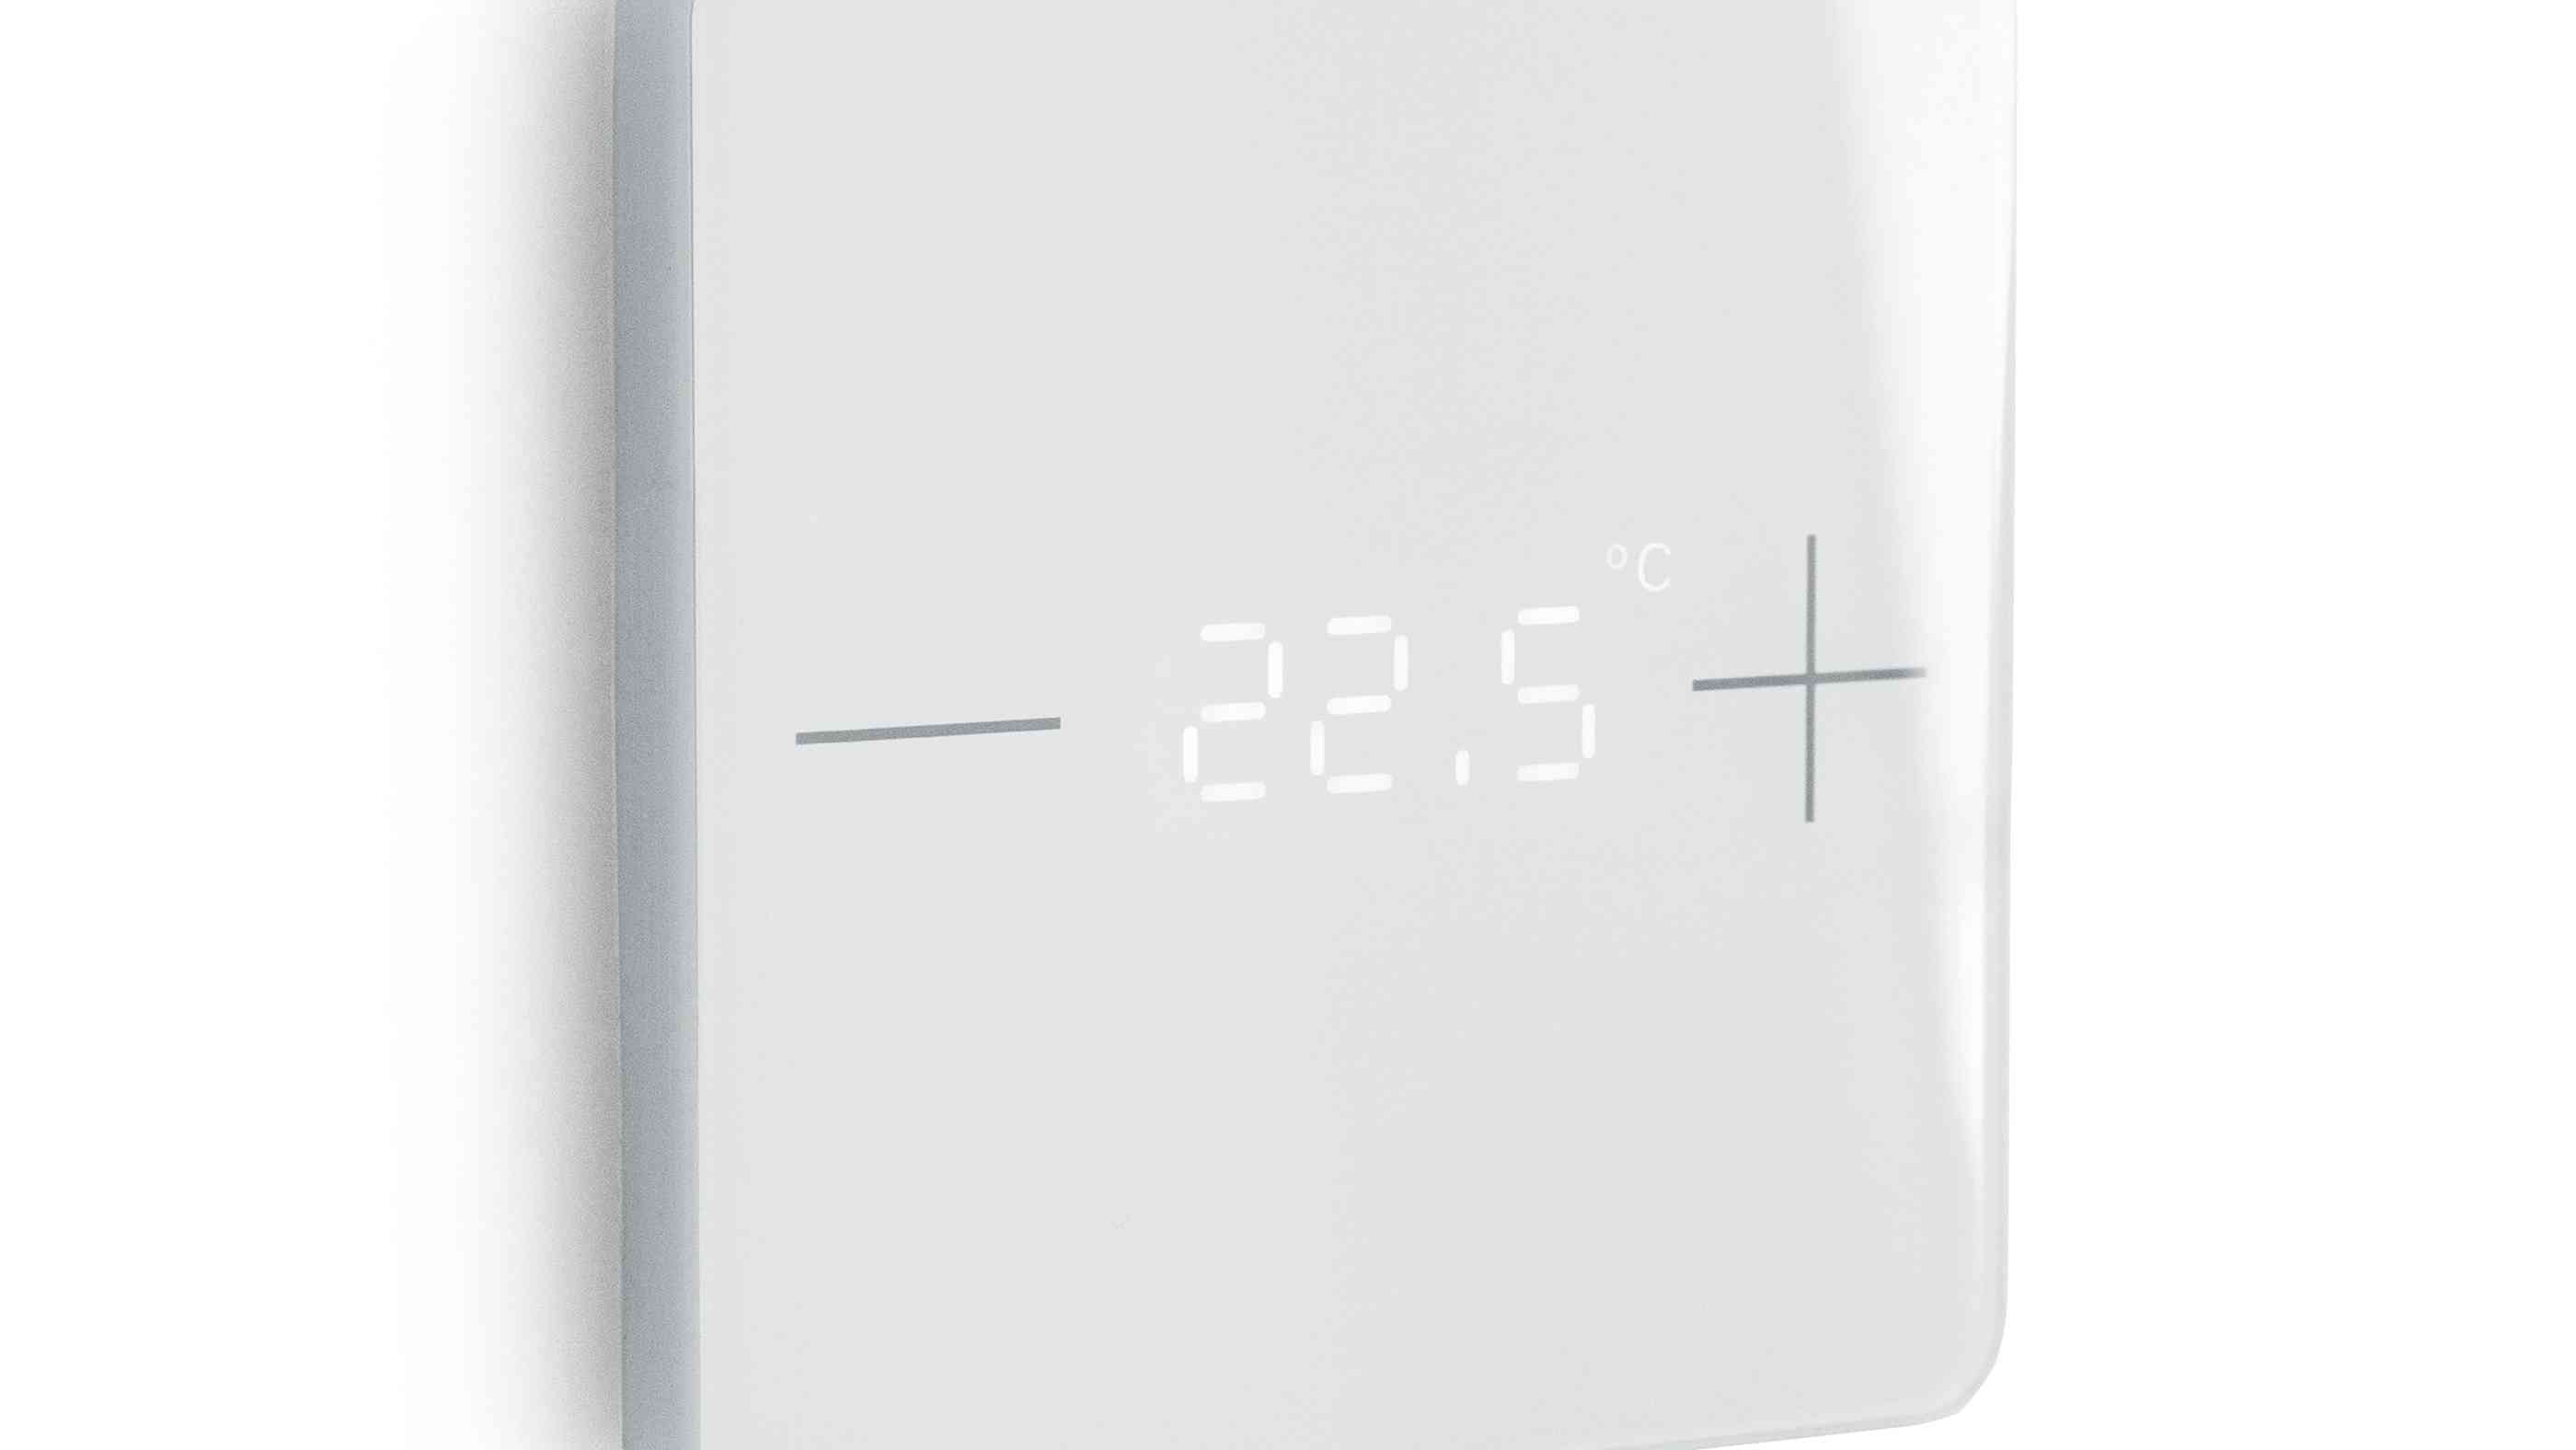 Red Dot Design Award: KNX-Temperaturregler